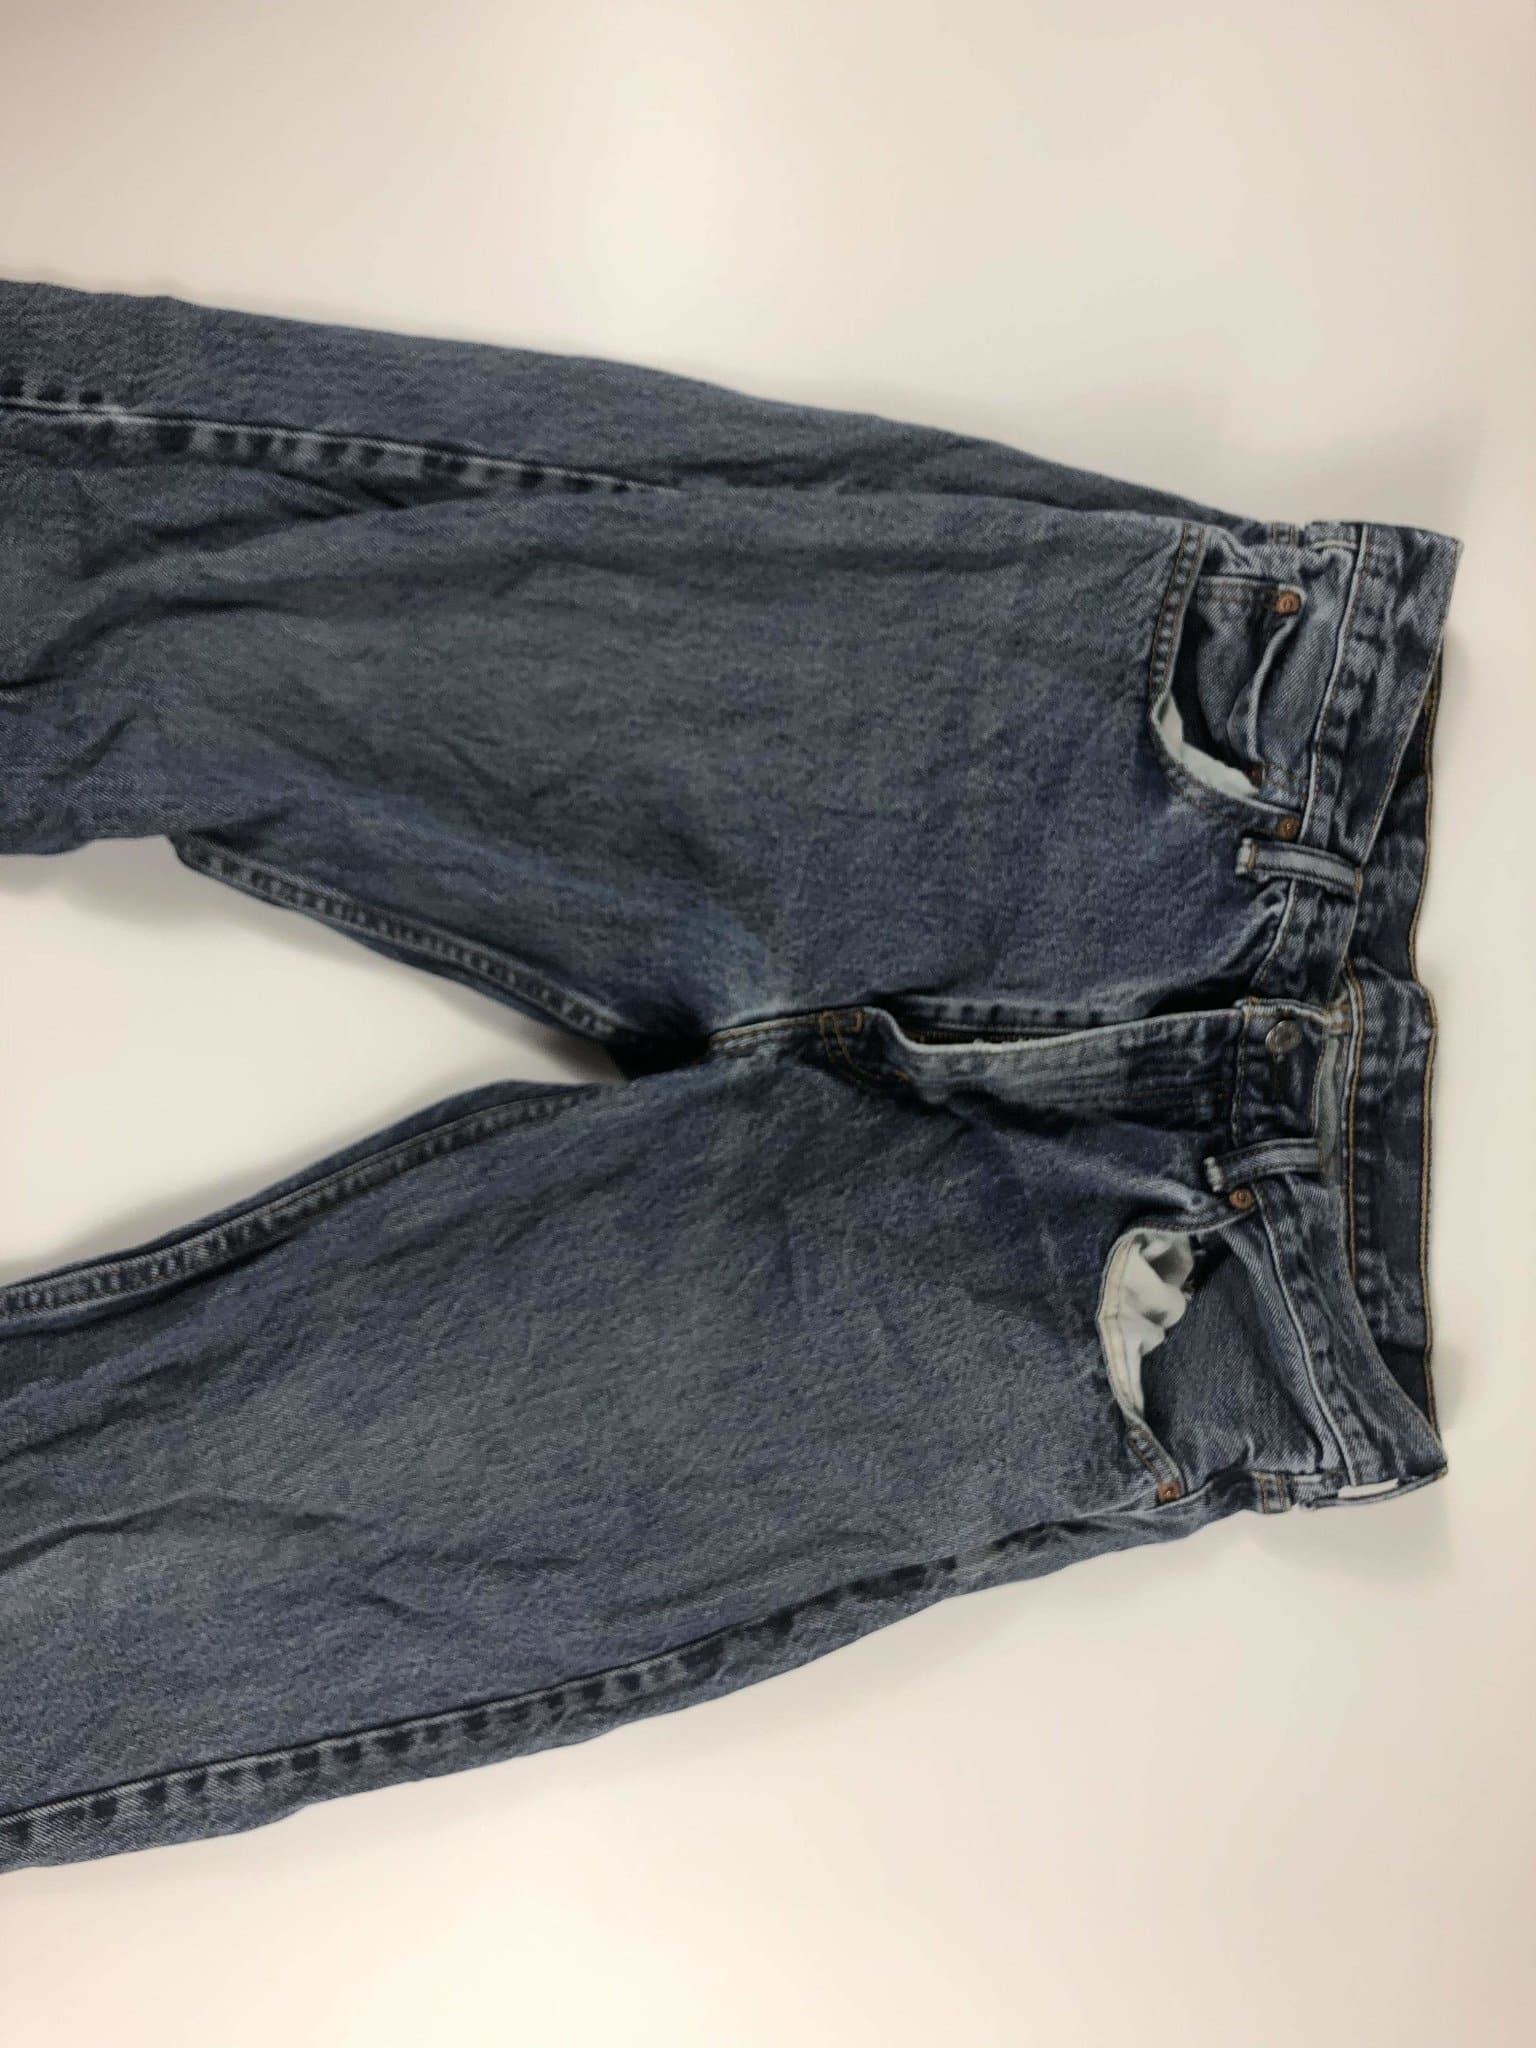 Vintage Levi's Classic 500 Jeans W34 L29 (B2) - Discounted Deals UK